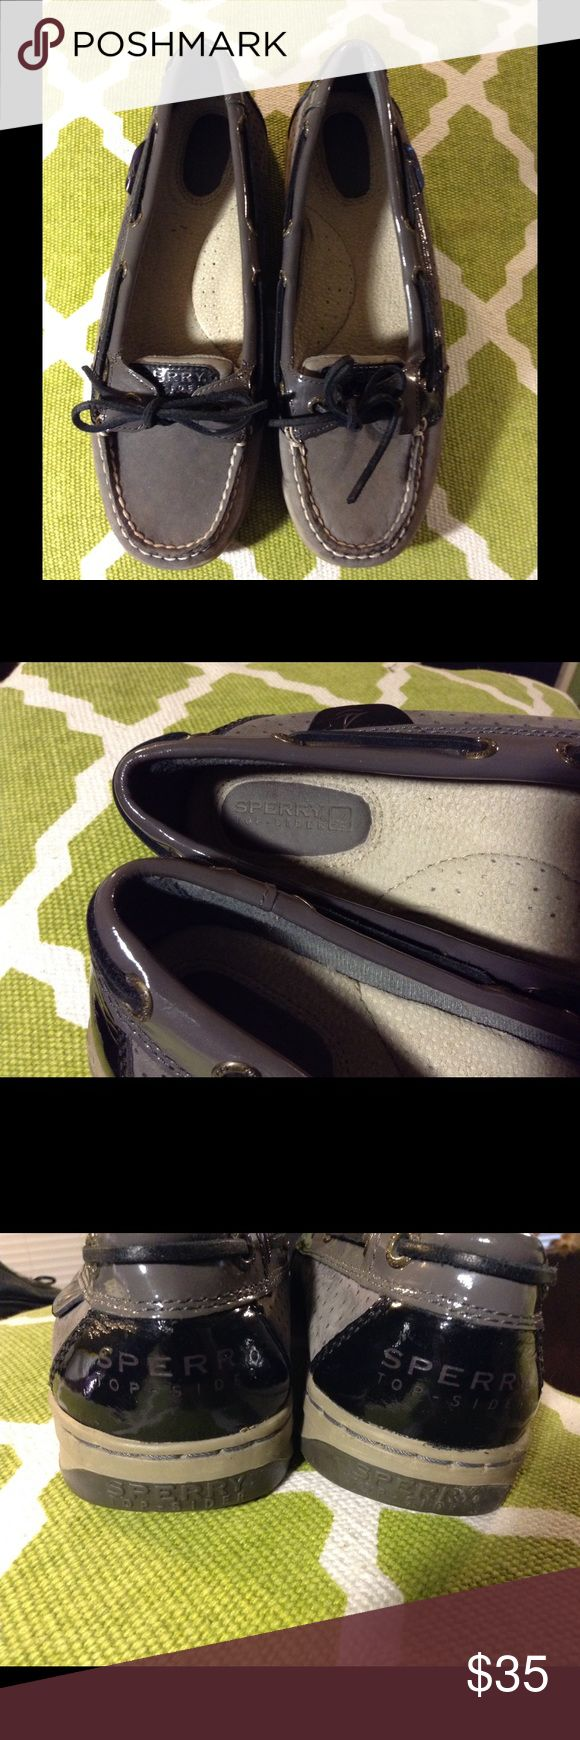 Grey/Black Sperry Top-siders Great casual shoes! Gently worn and super adorable. Sperry Top-Sider Shoes Flats & Loafers